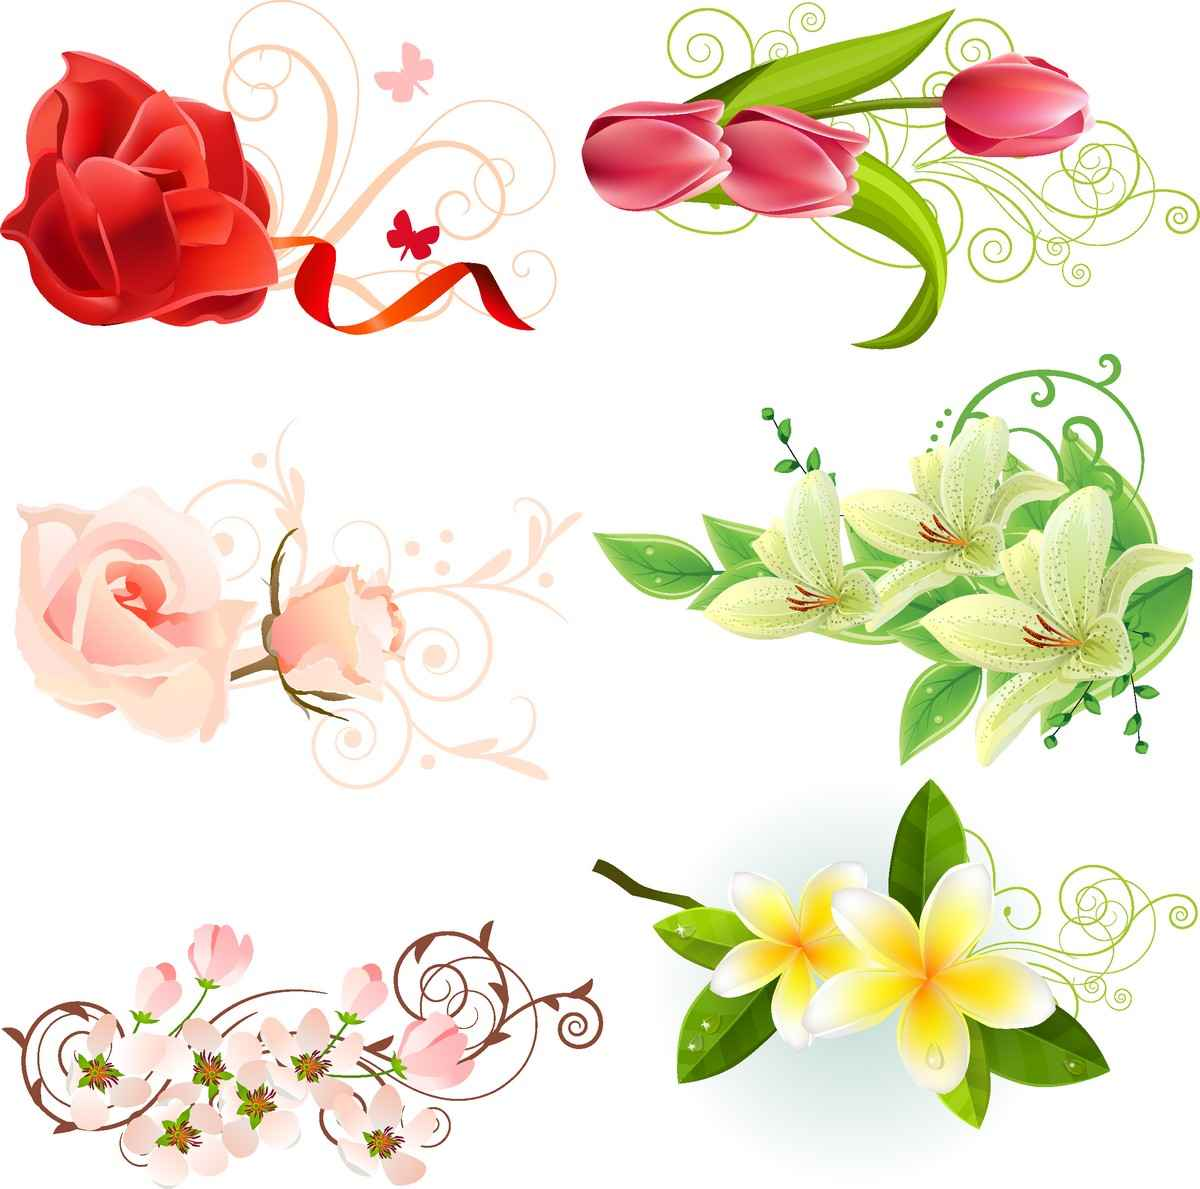 Flowers Vectors png